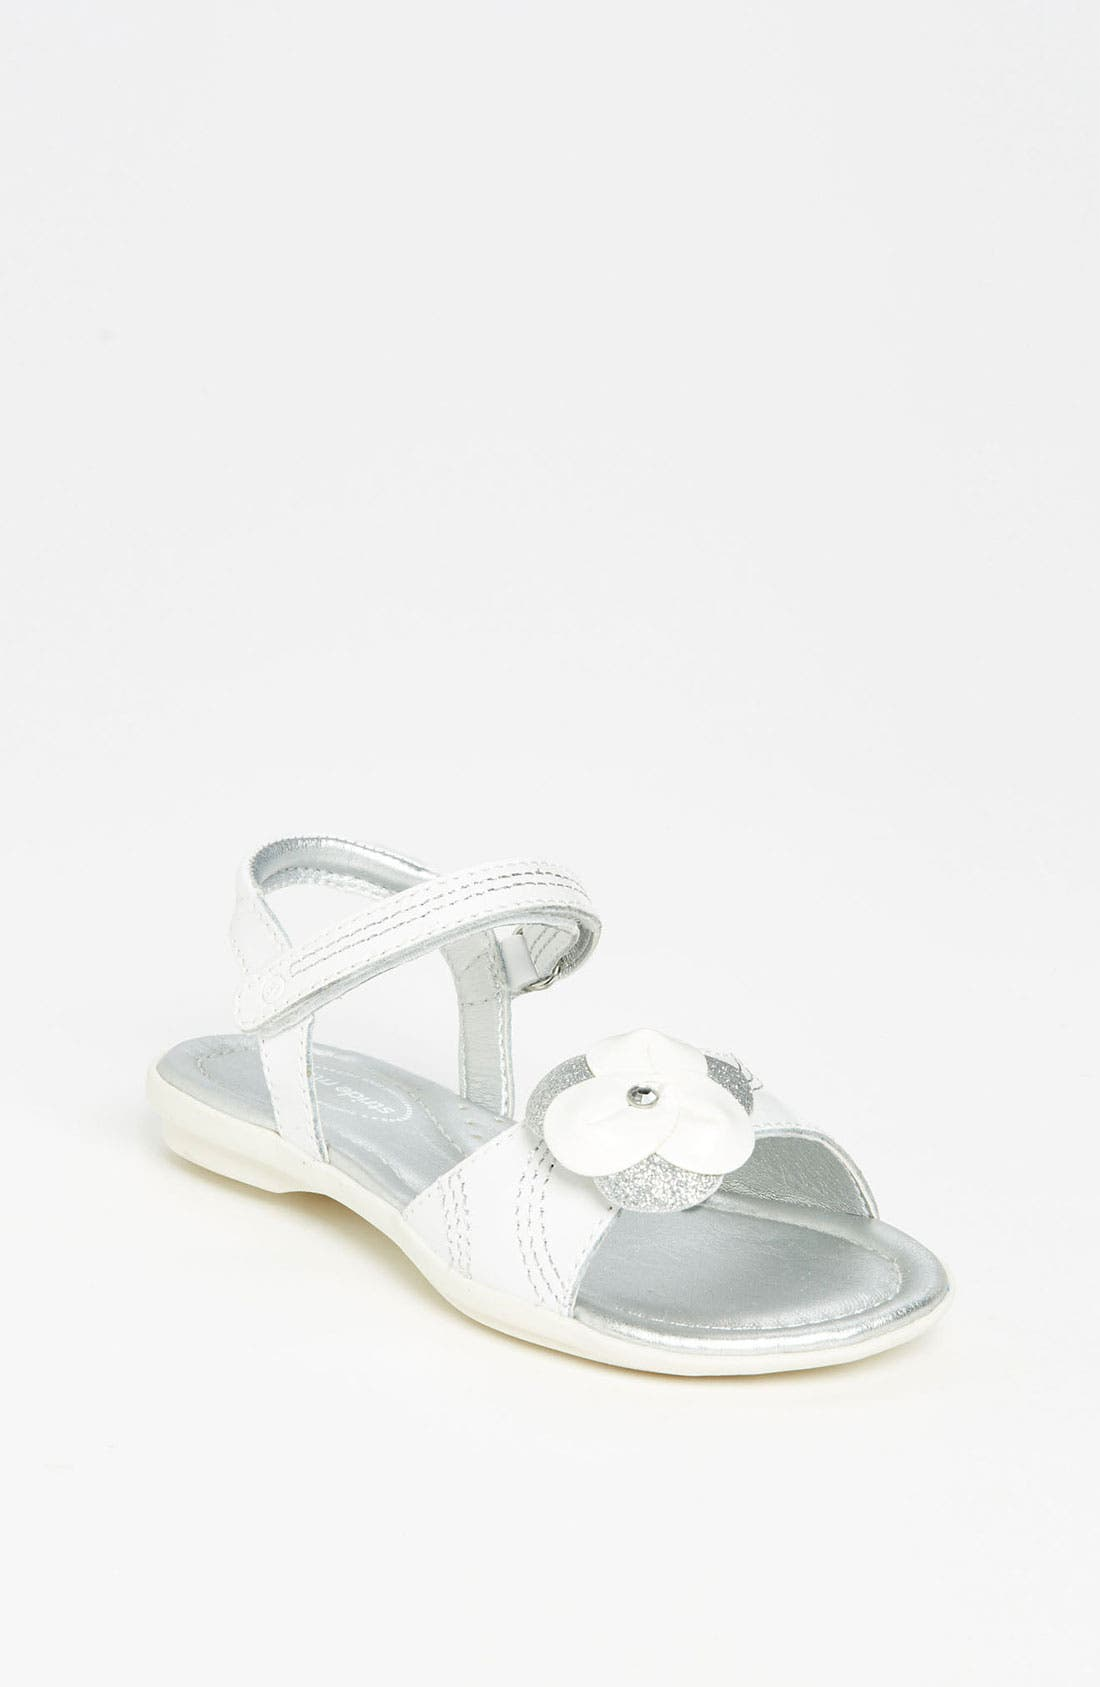 Alternate Image 1 Selected - Stride Rite 'Laverne' Sandal (Toddler & Little Kid)